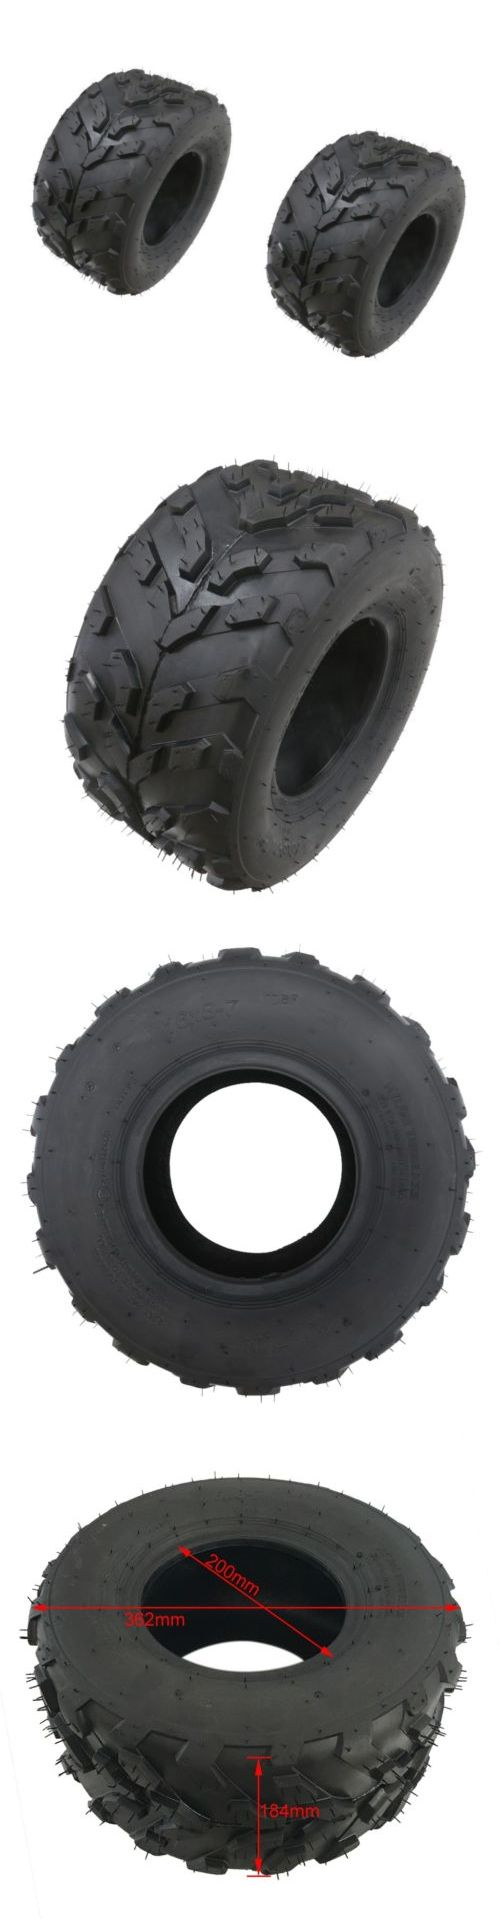 Training Wheels 177839: 16X8- 7 Inch Tyre Tire Tubeless 90 110 125 150Cc Quad Dirt Bike Atv Buggy 4 Ply -> BUY IT NOW ONLY: $79.99 on eBay!